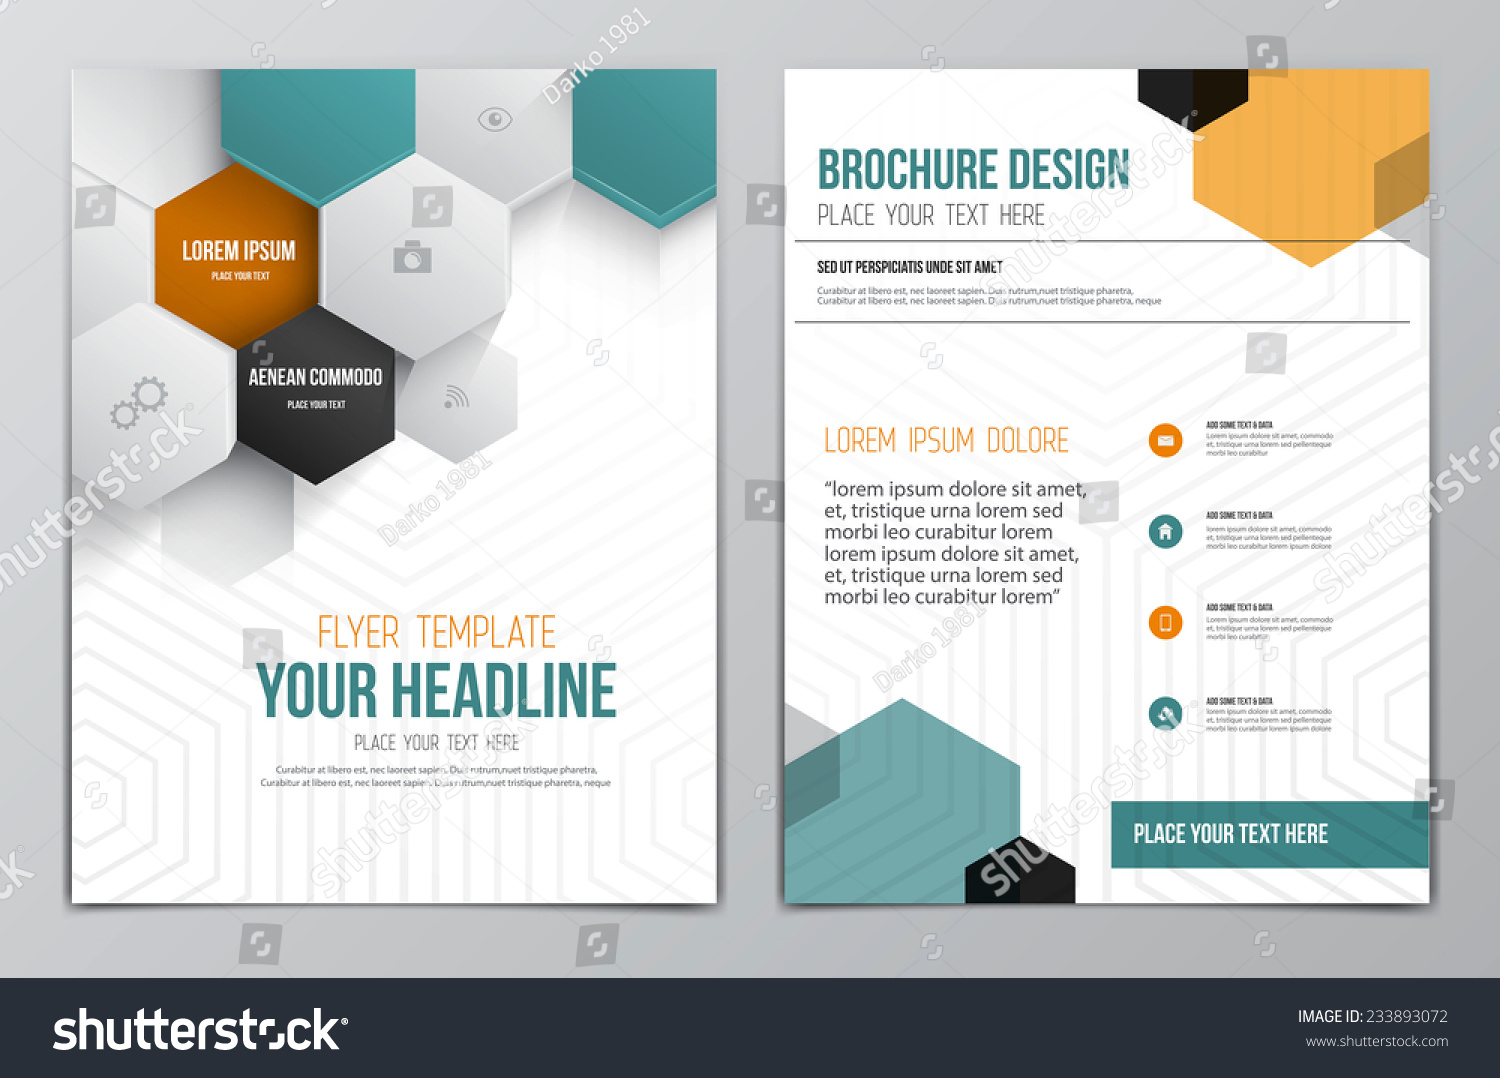 Brochure design template geometric shapes abstract for Graphic design brochure templates